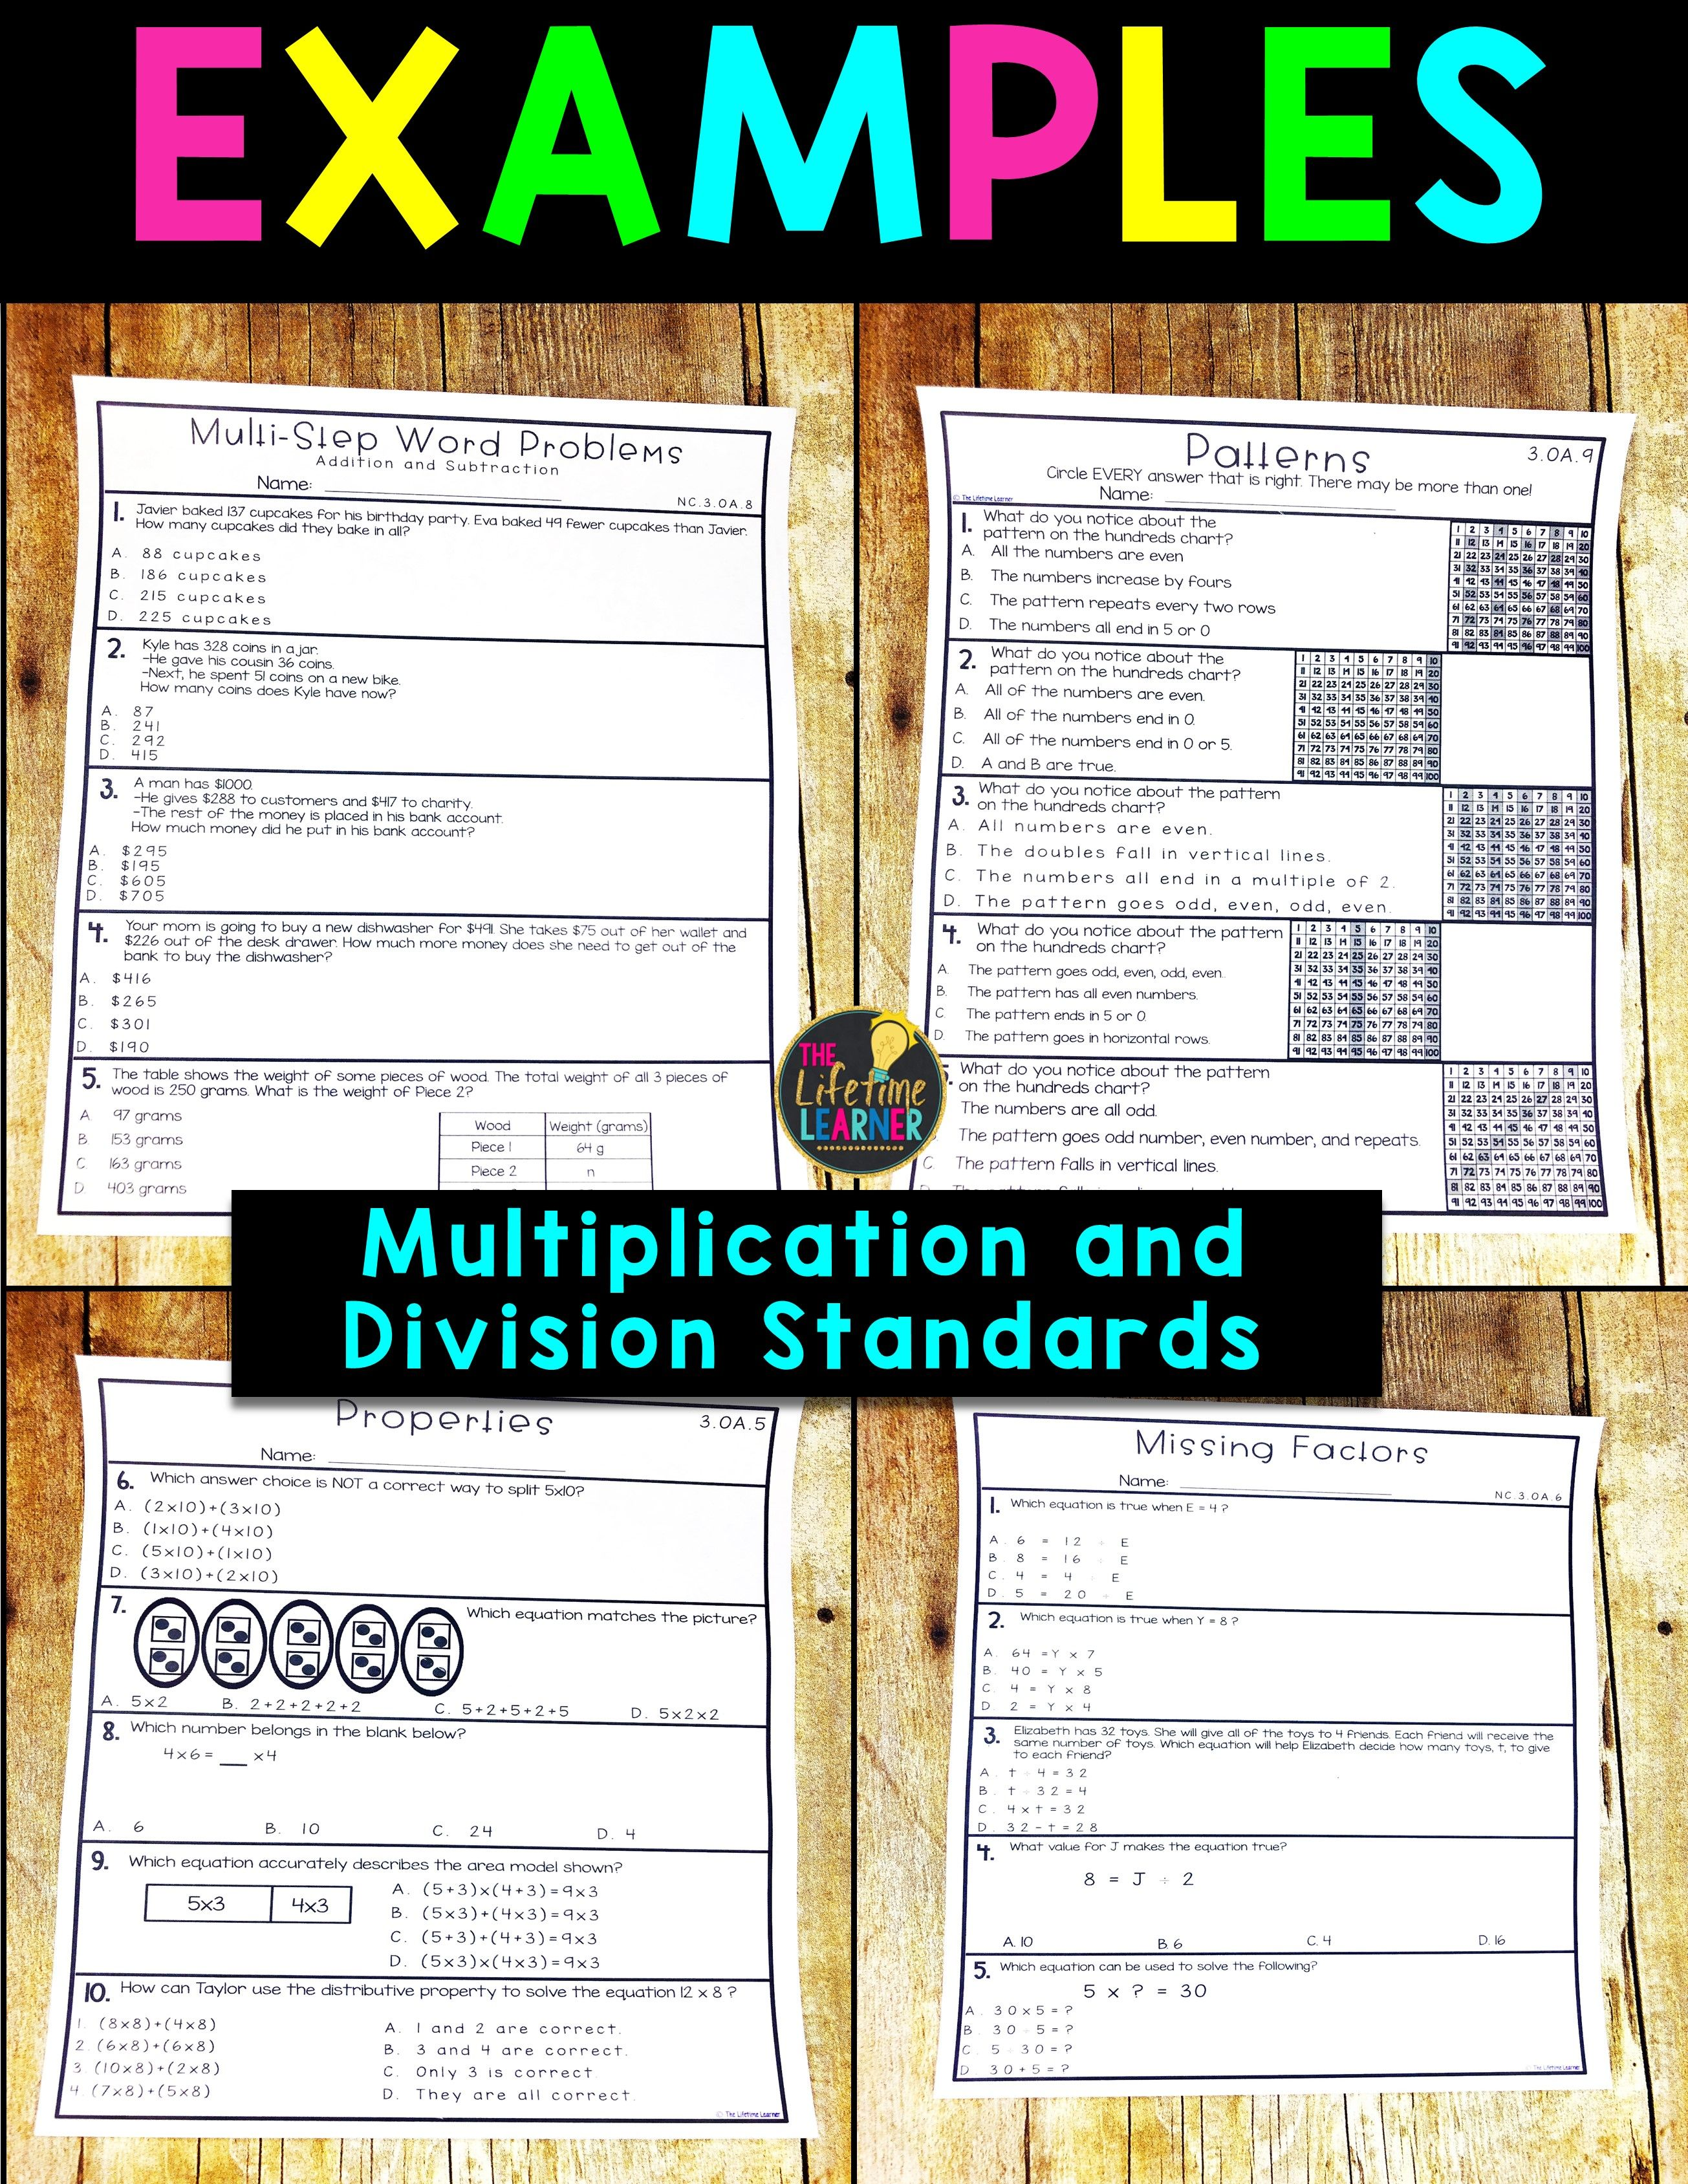 Multiplication And Division Worksheets 3rd Grade Math Worksheets Solving Word Problems 3rd Grade Math Worksheets Common Core Math Fractions